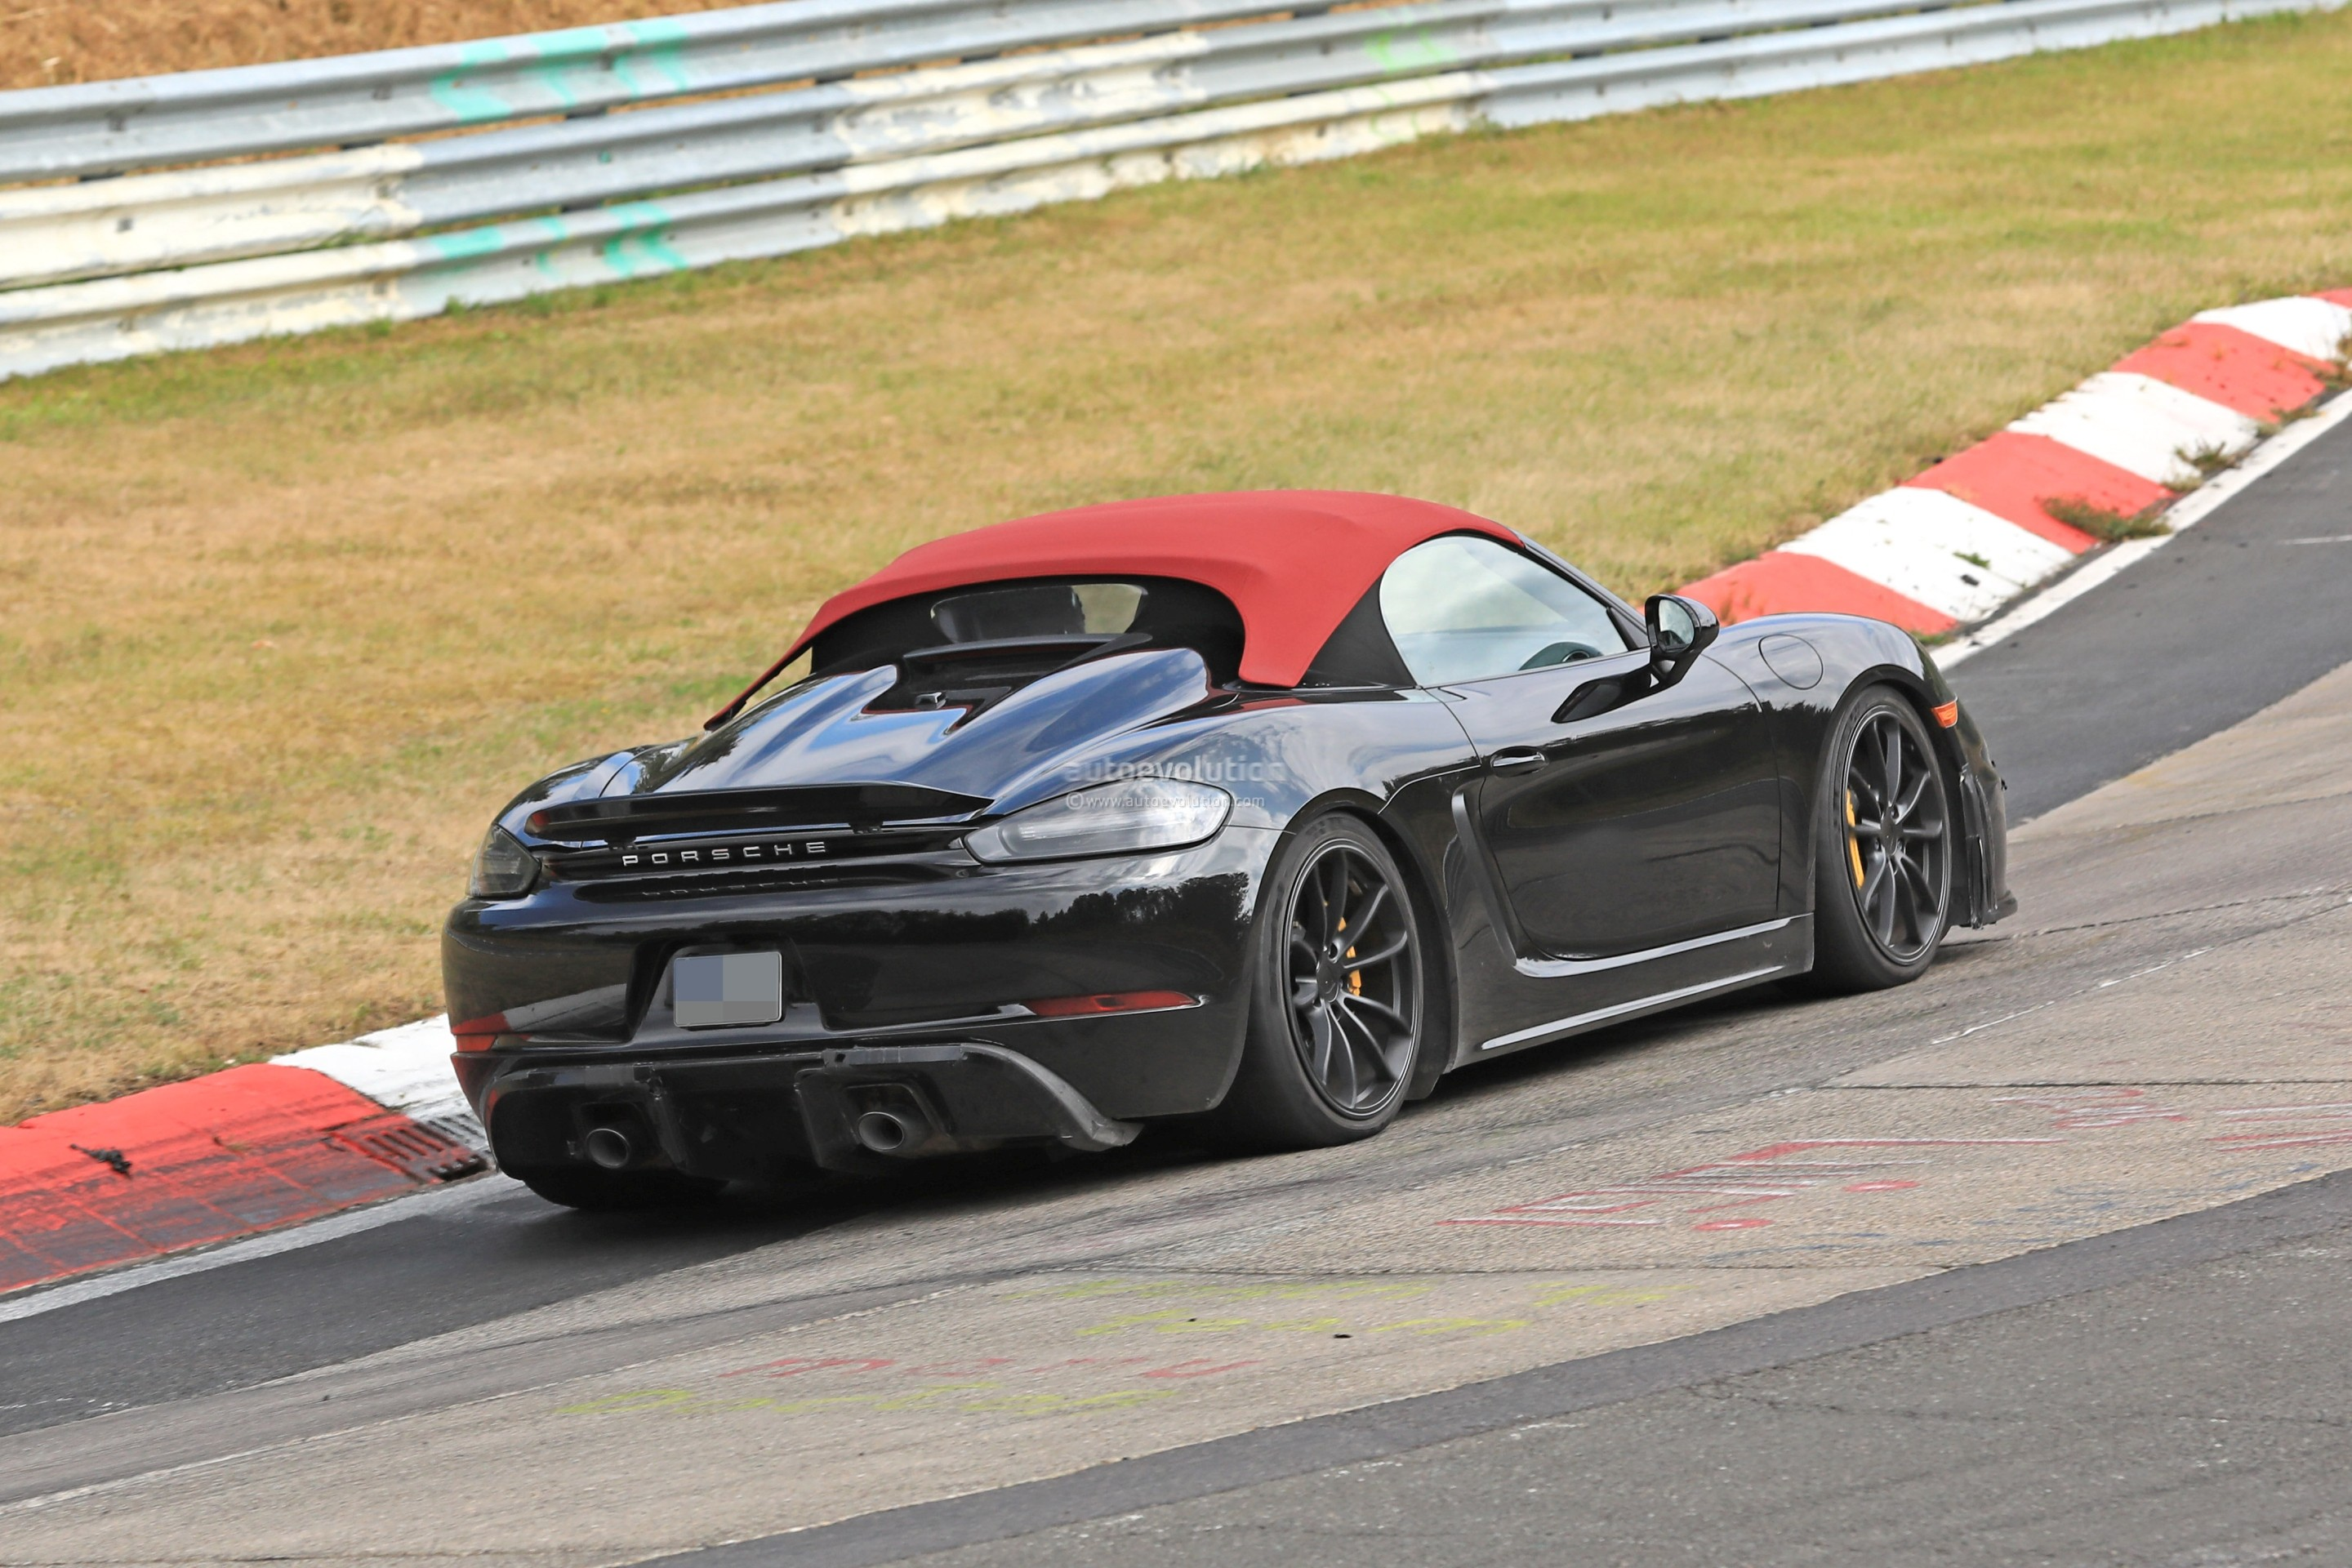 2019 Porsche 718 Boxster Spyder Hits Nurburgring In